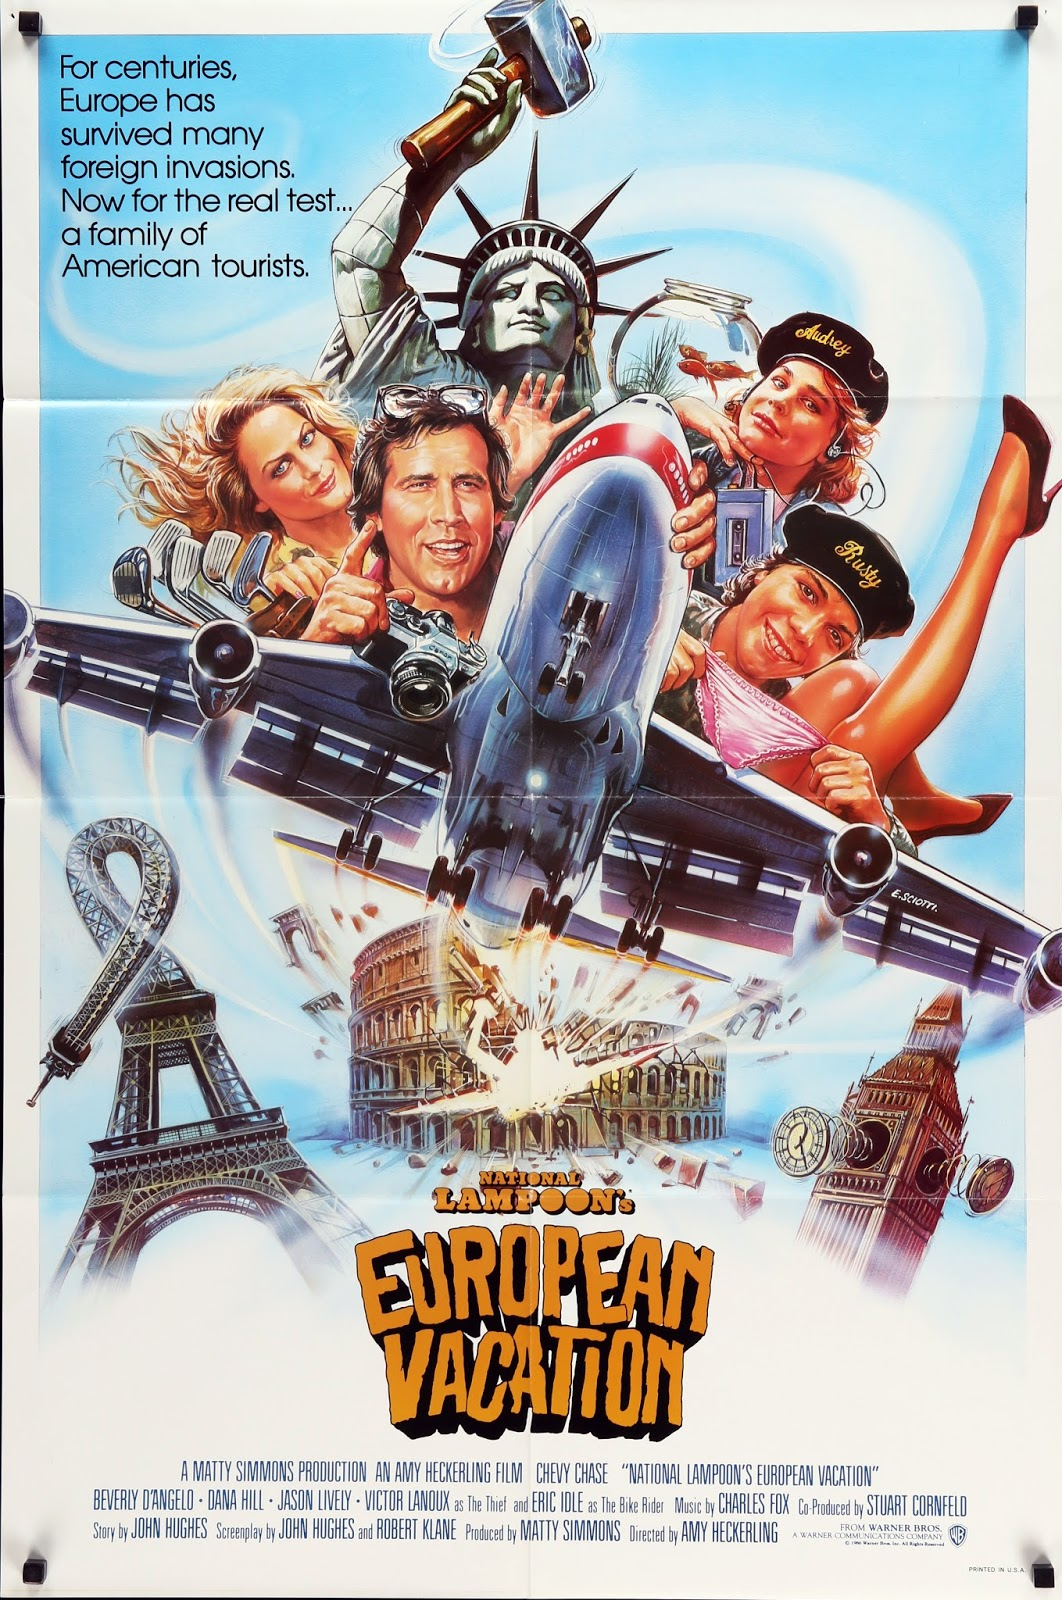 Happyotter: NATIONAL LAMPOON'S EUROPEAN VACATION (1985